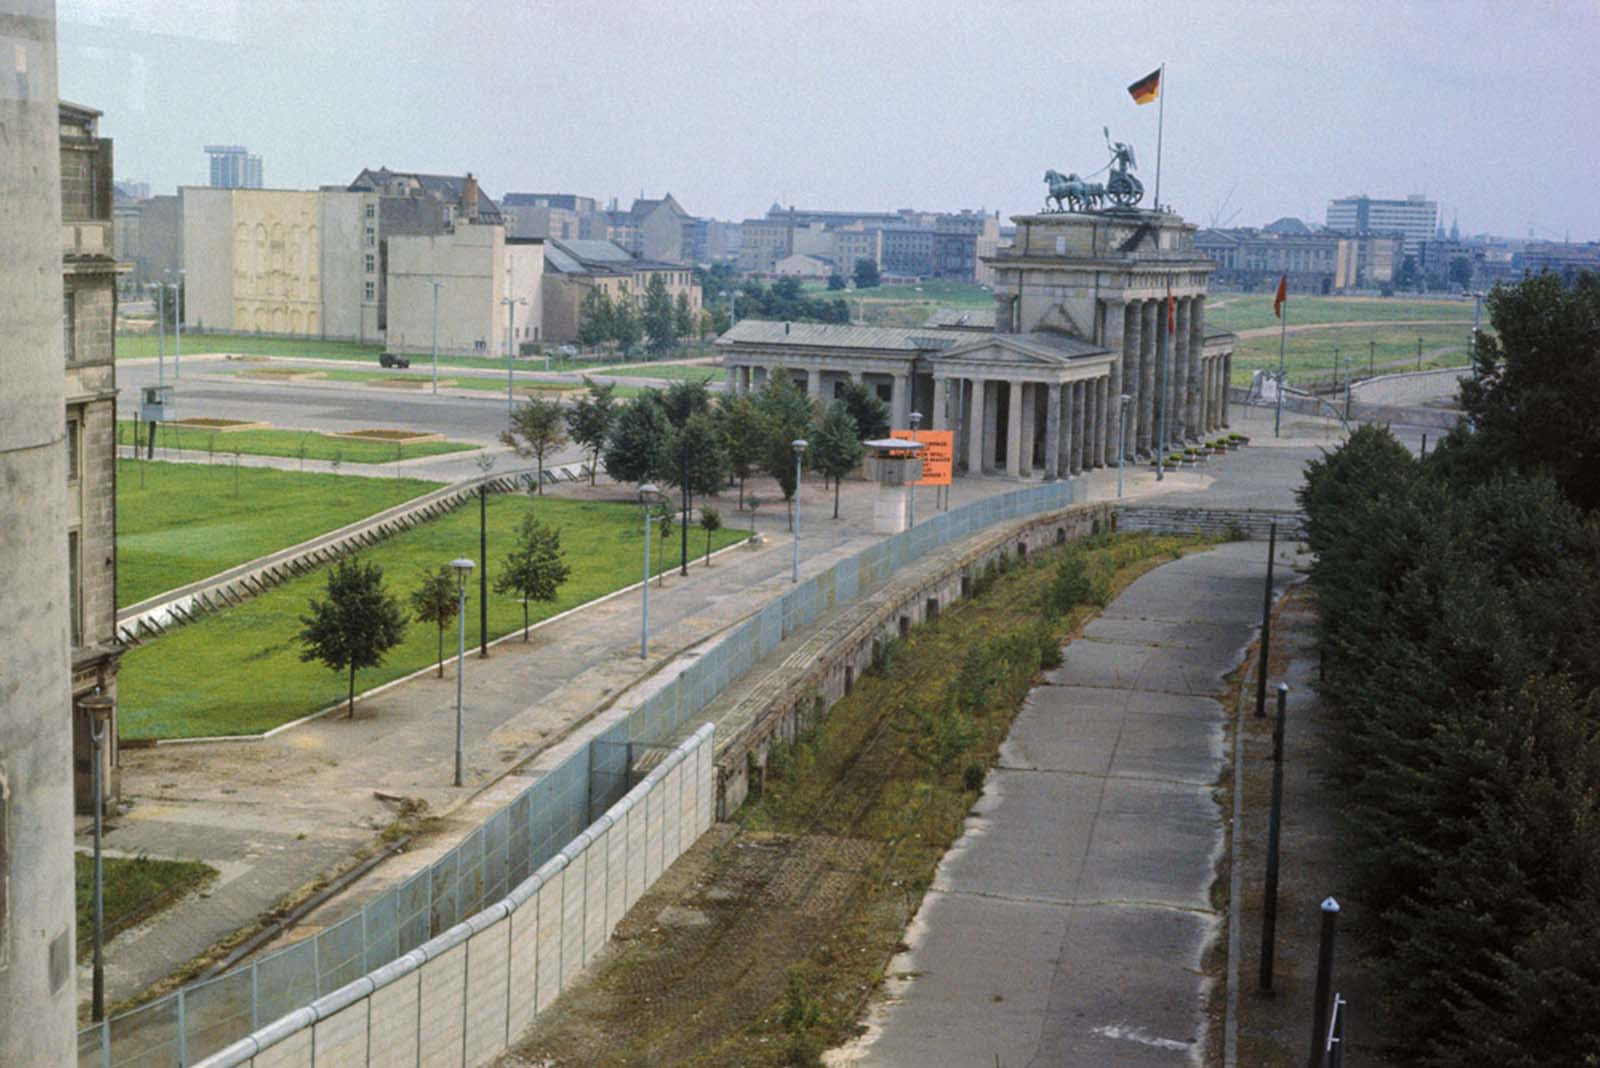 A photograph taken on August 10, 1966, of the system of walls, barriers, watchtowers, and an open